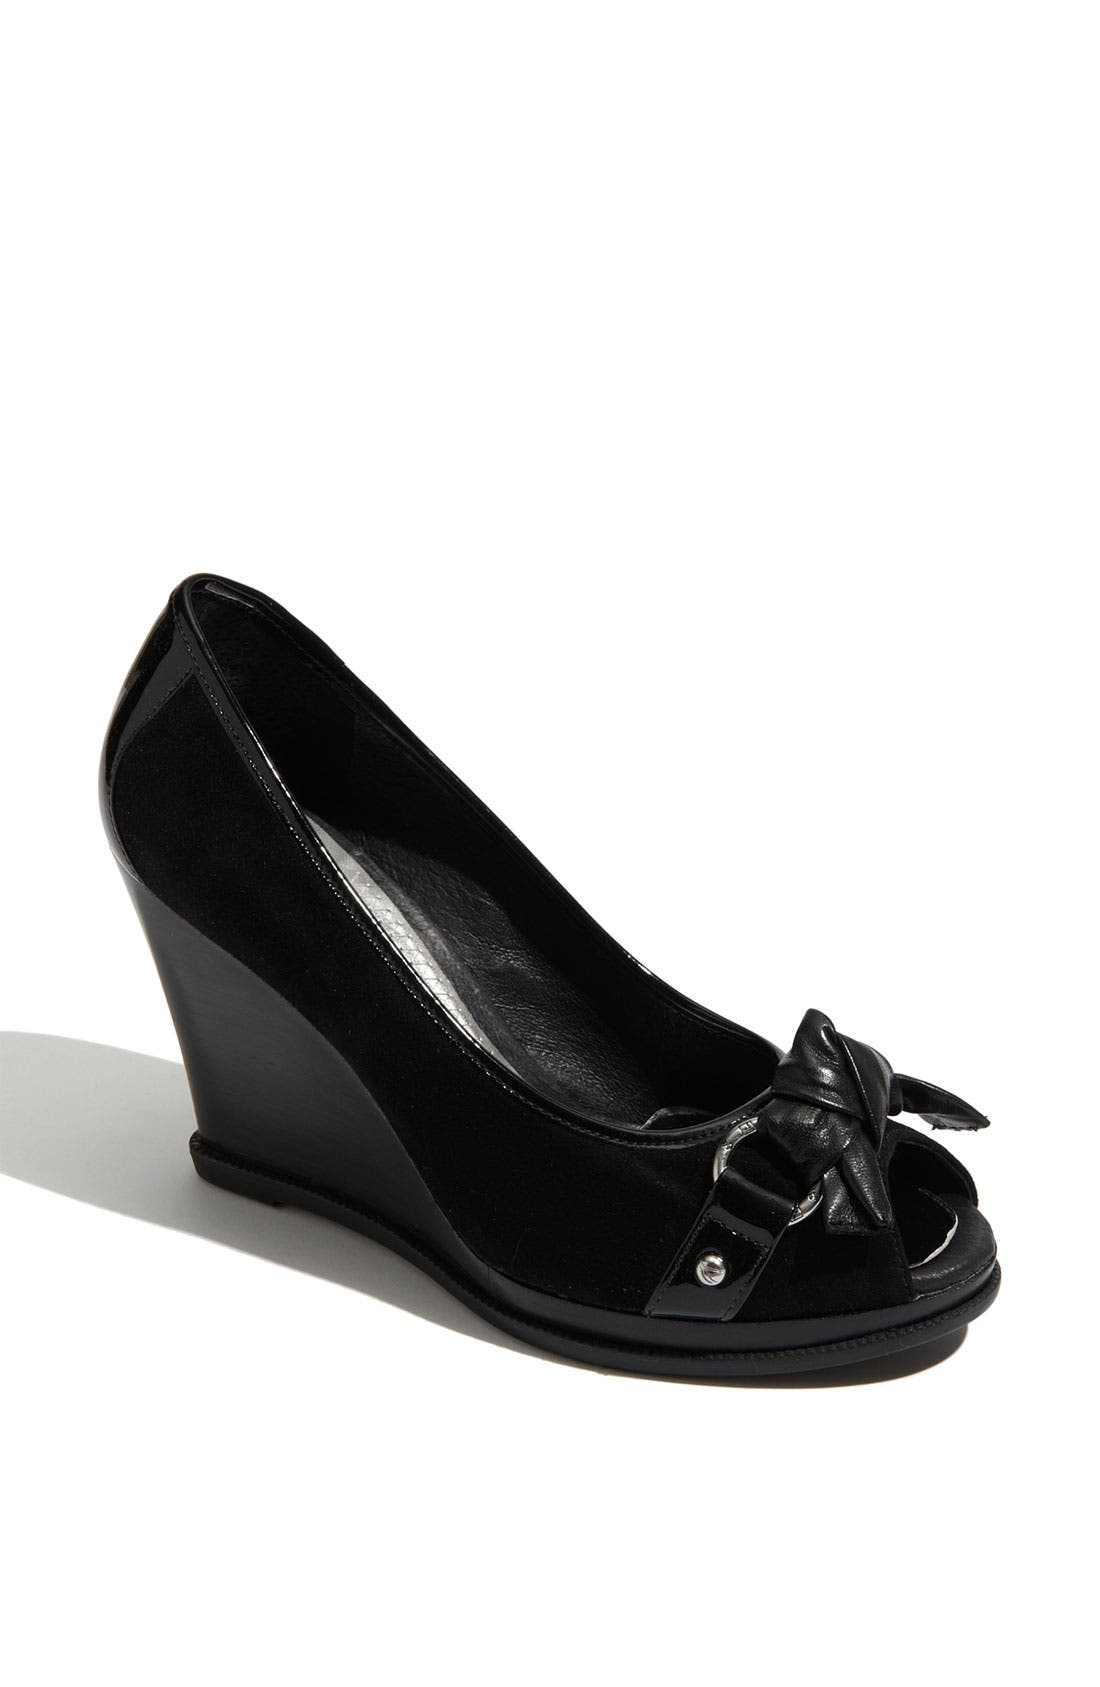 Alternate Image 1 Selected - Sperry Top-Sider® 'Silverside' Wedge Pump